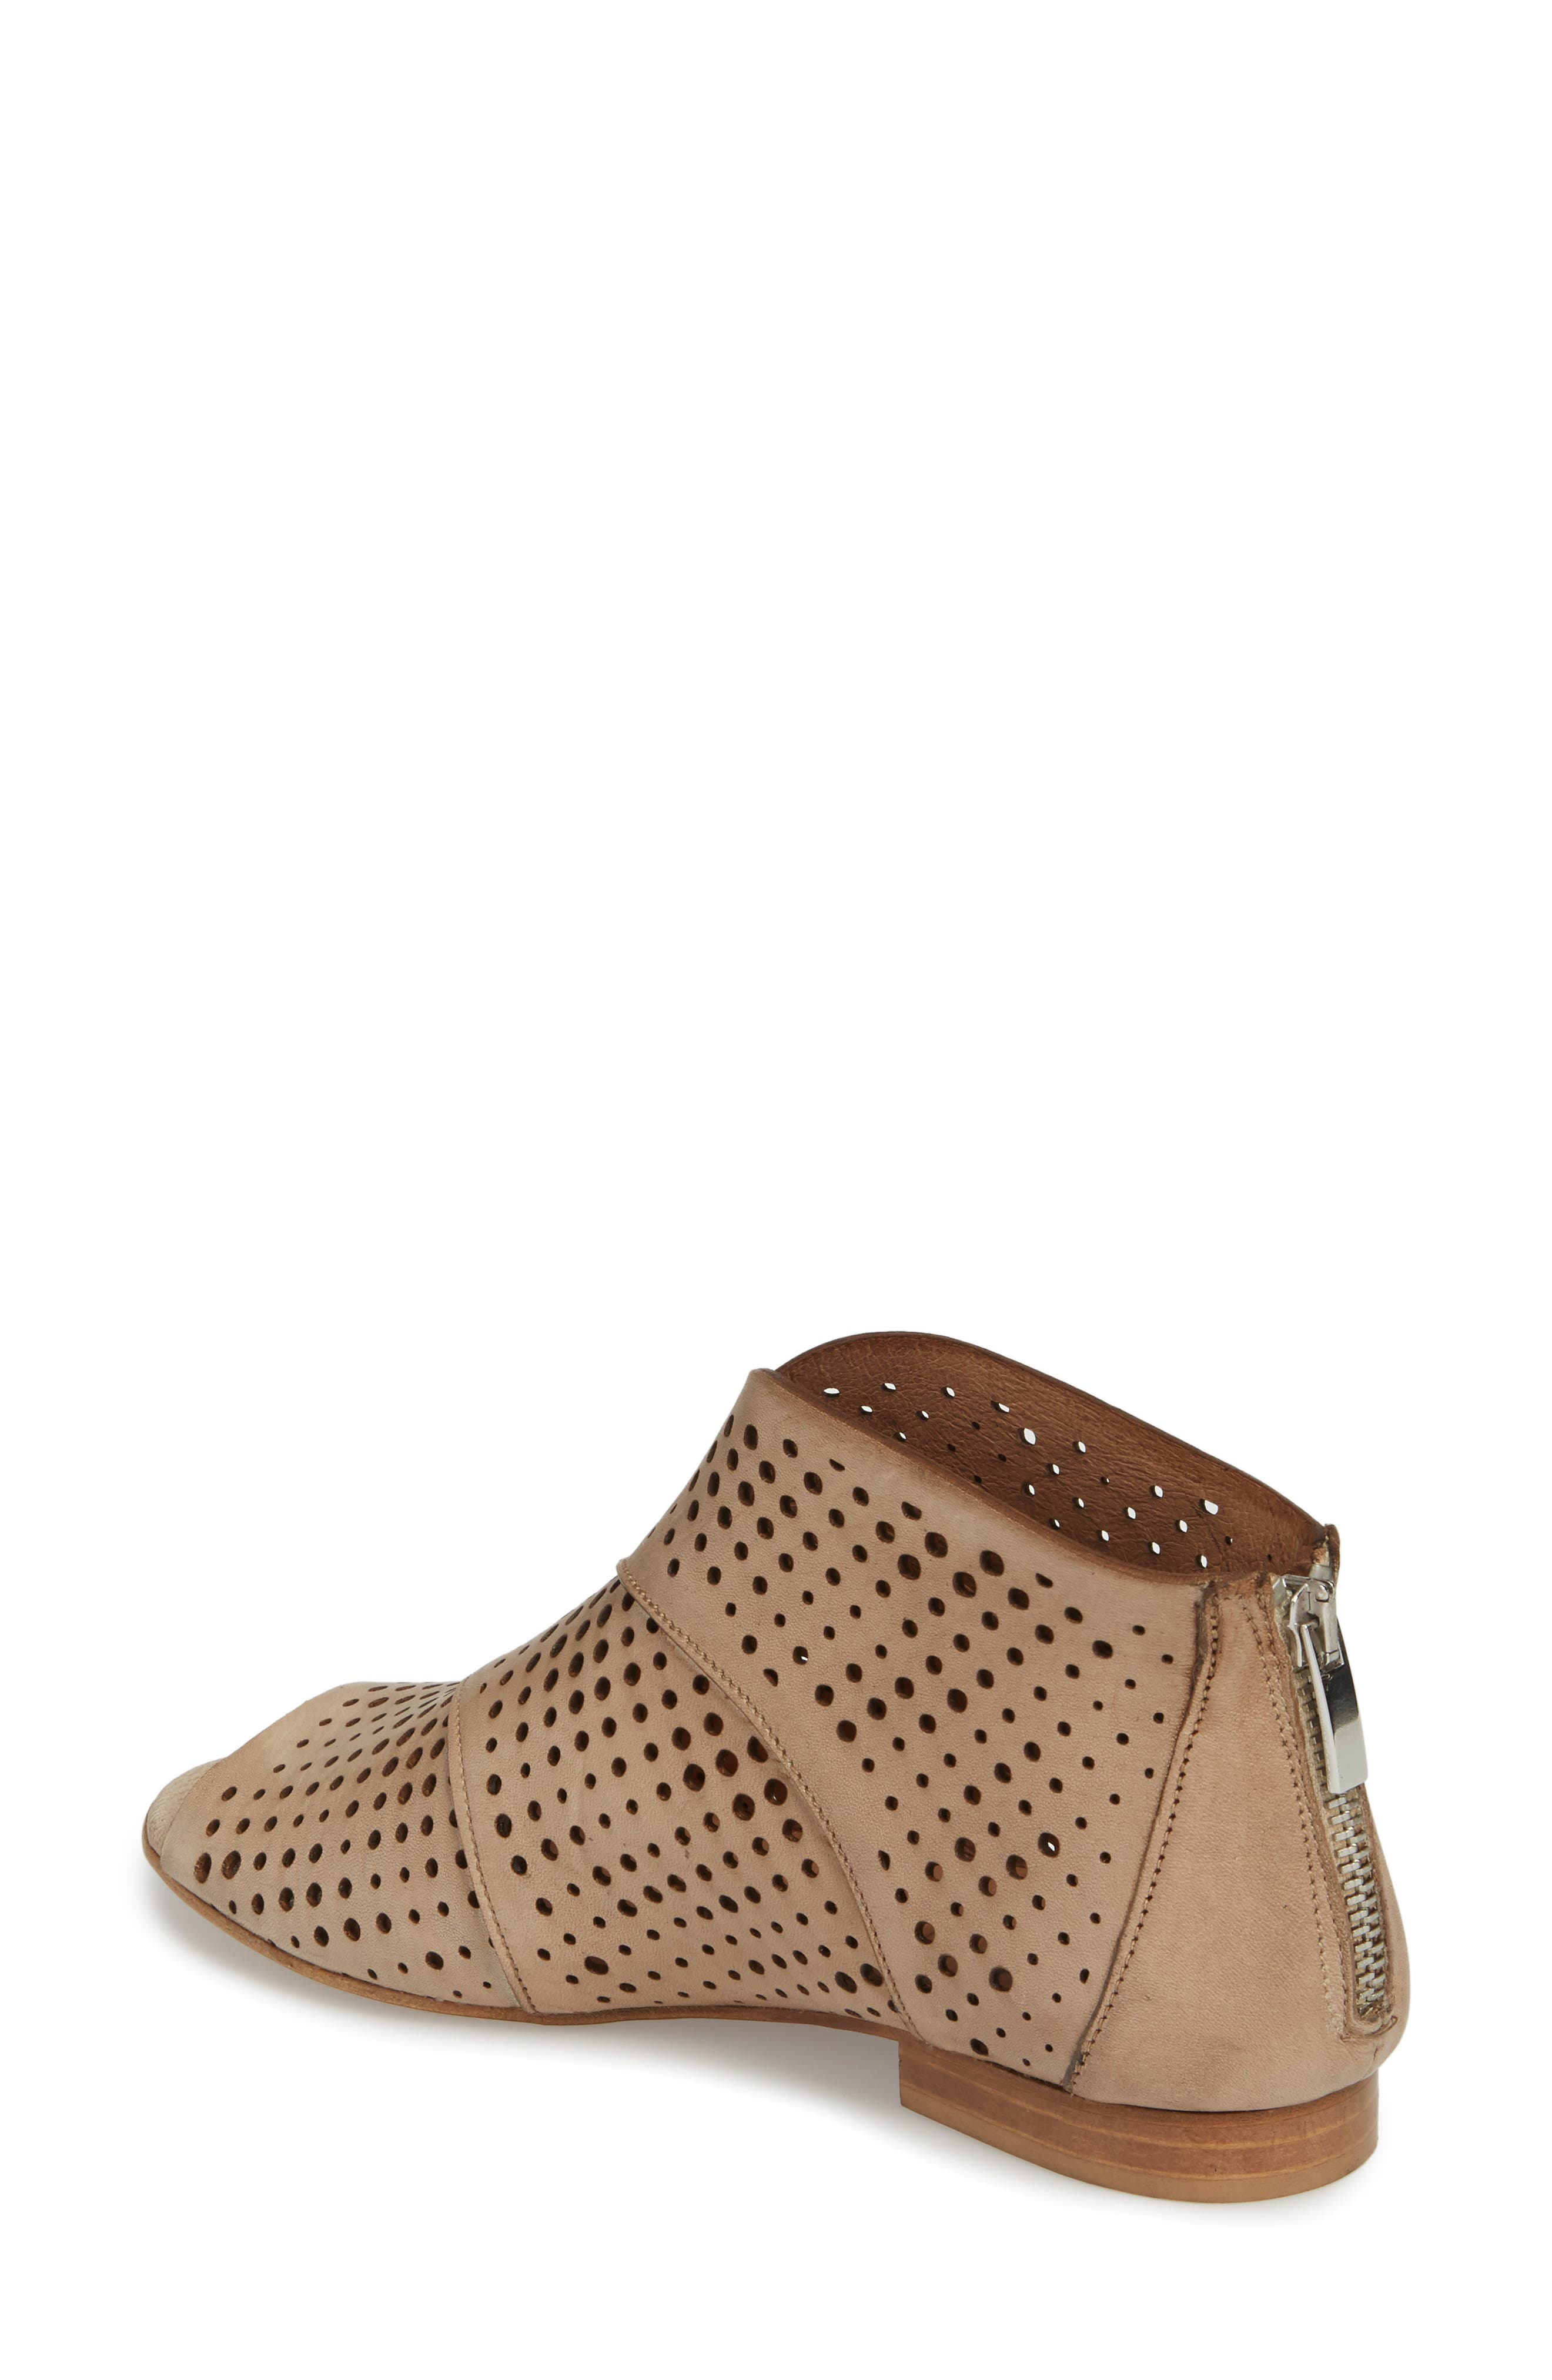 Brealey Bootie,                             Alternate thumbnail 2, color,                             Pearl Leather